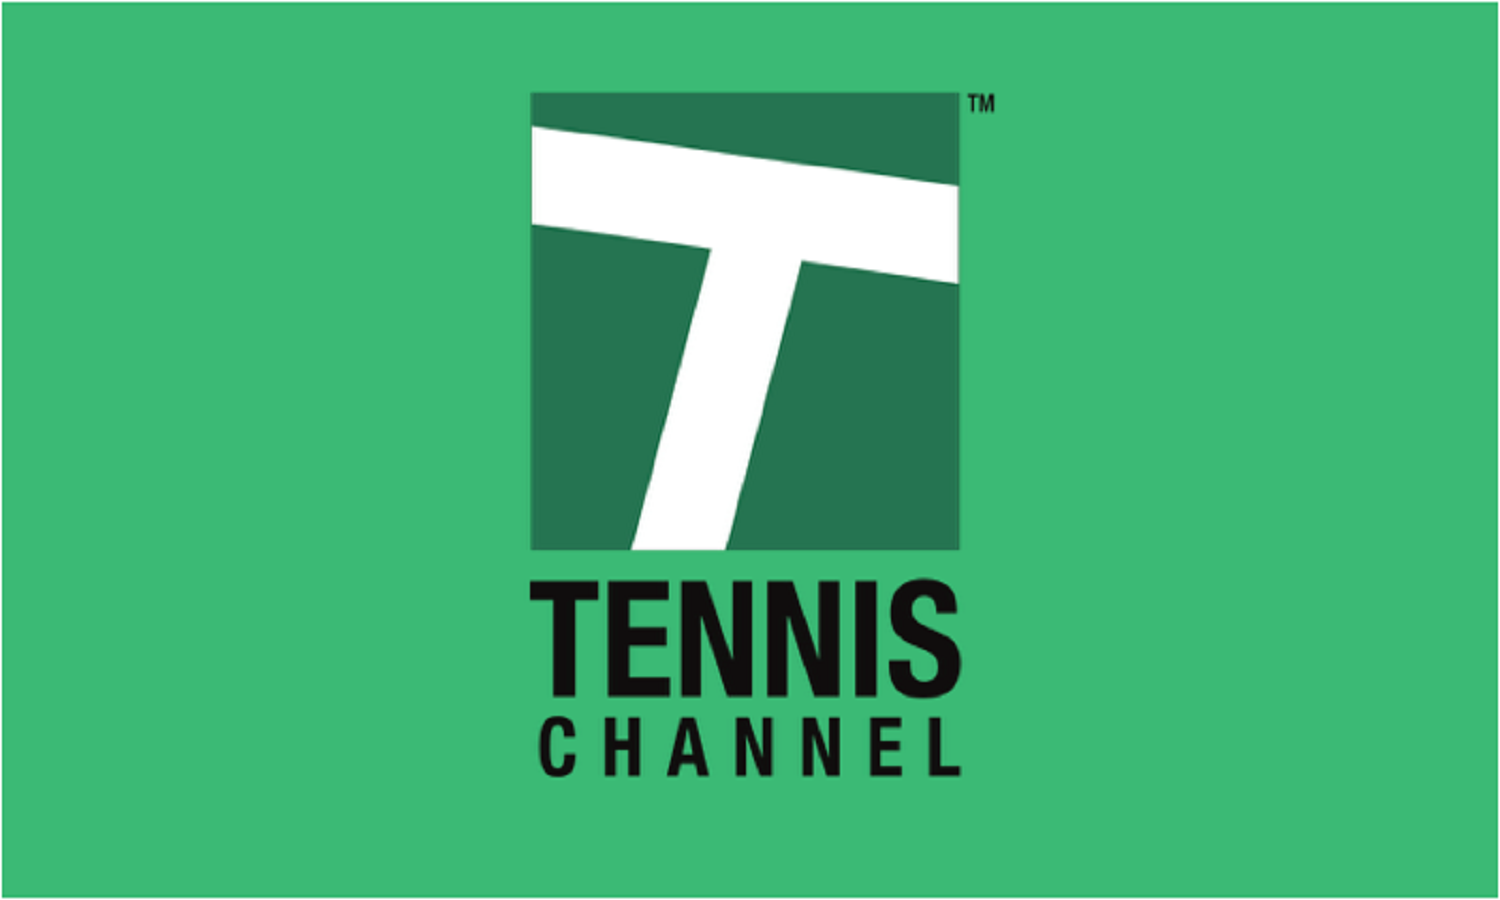 How to Activate Tennis Channel?